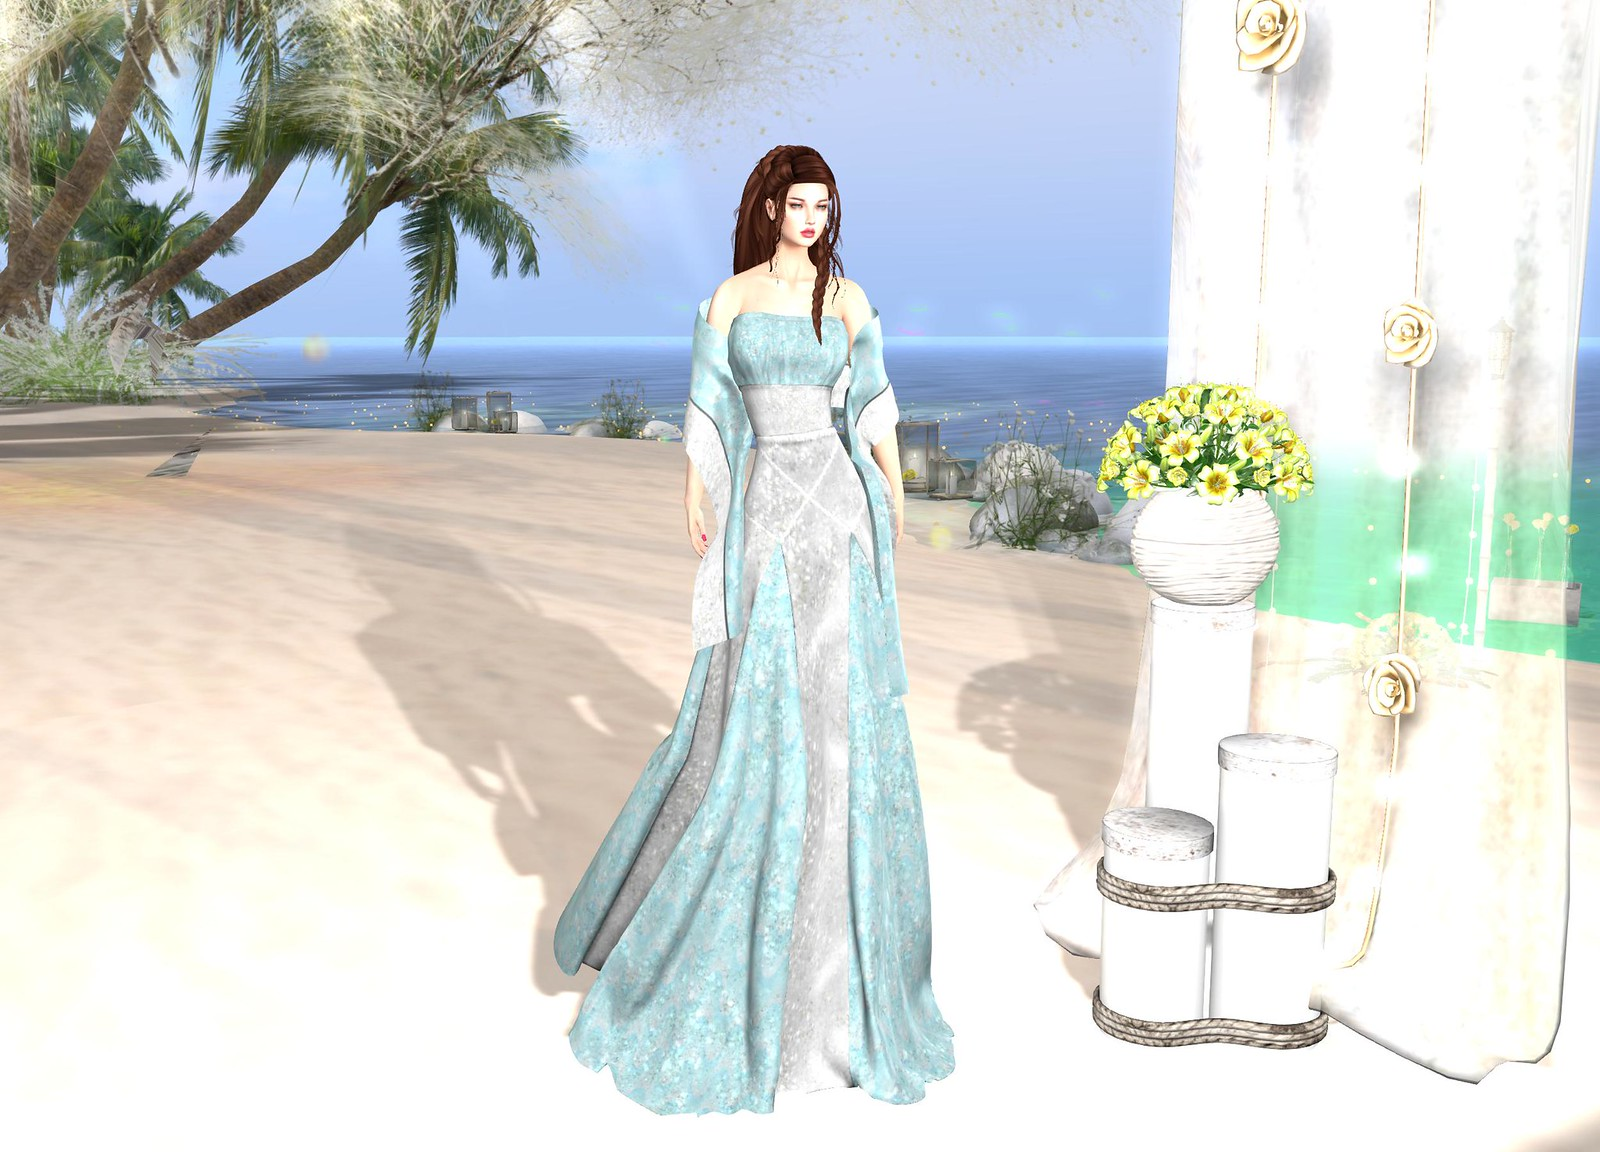 LuceMia - Baboom Couture & .:EMO-tion:. & PosESioN